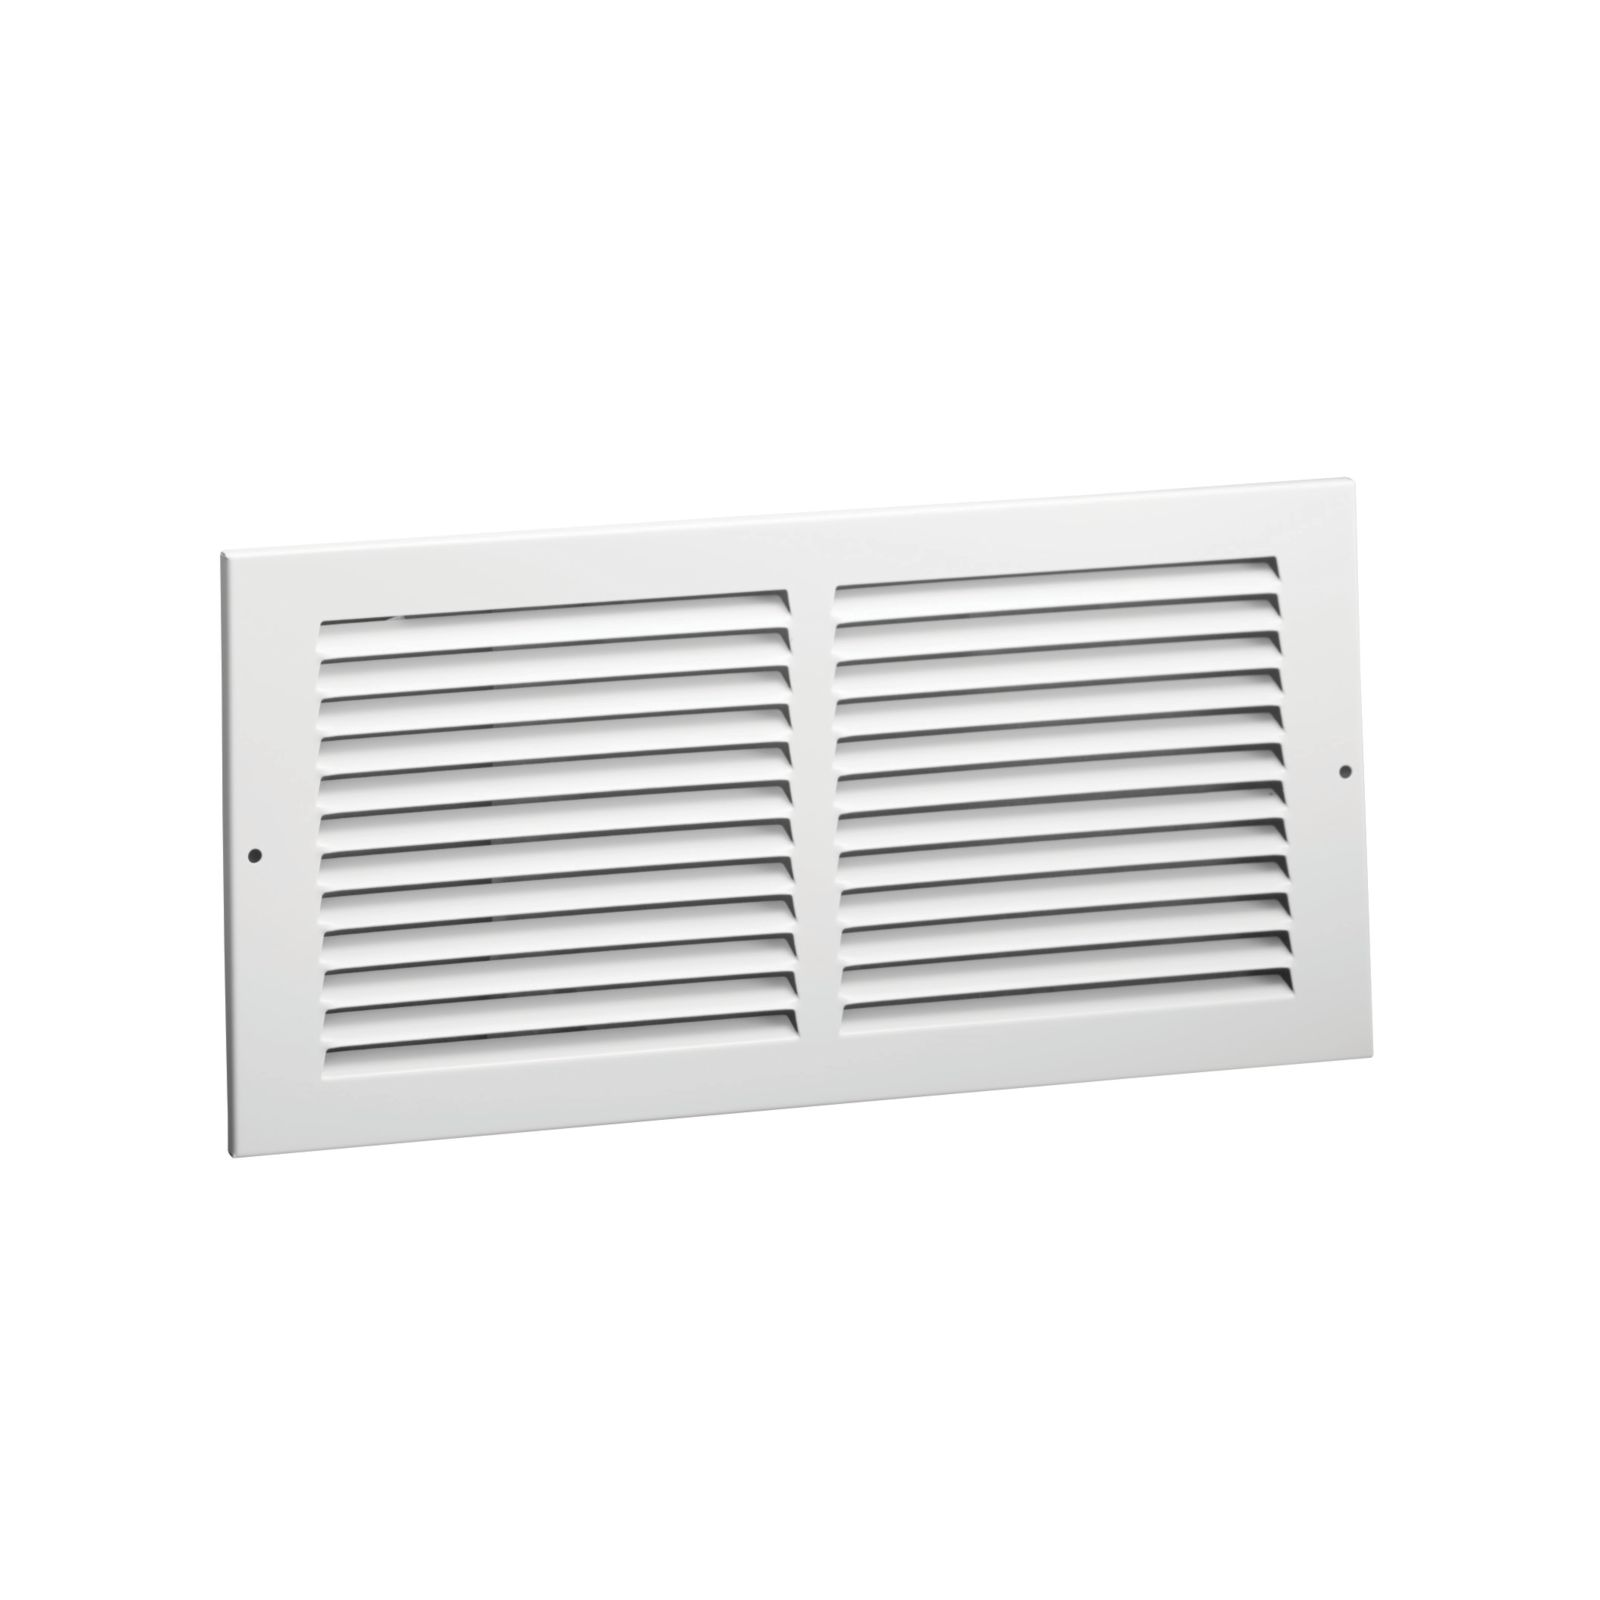 "Hart & Cooley 703985 - #672M Steel Return Air Grille, White Finish, 8"" X 8"""